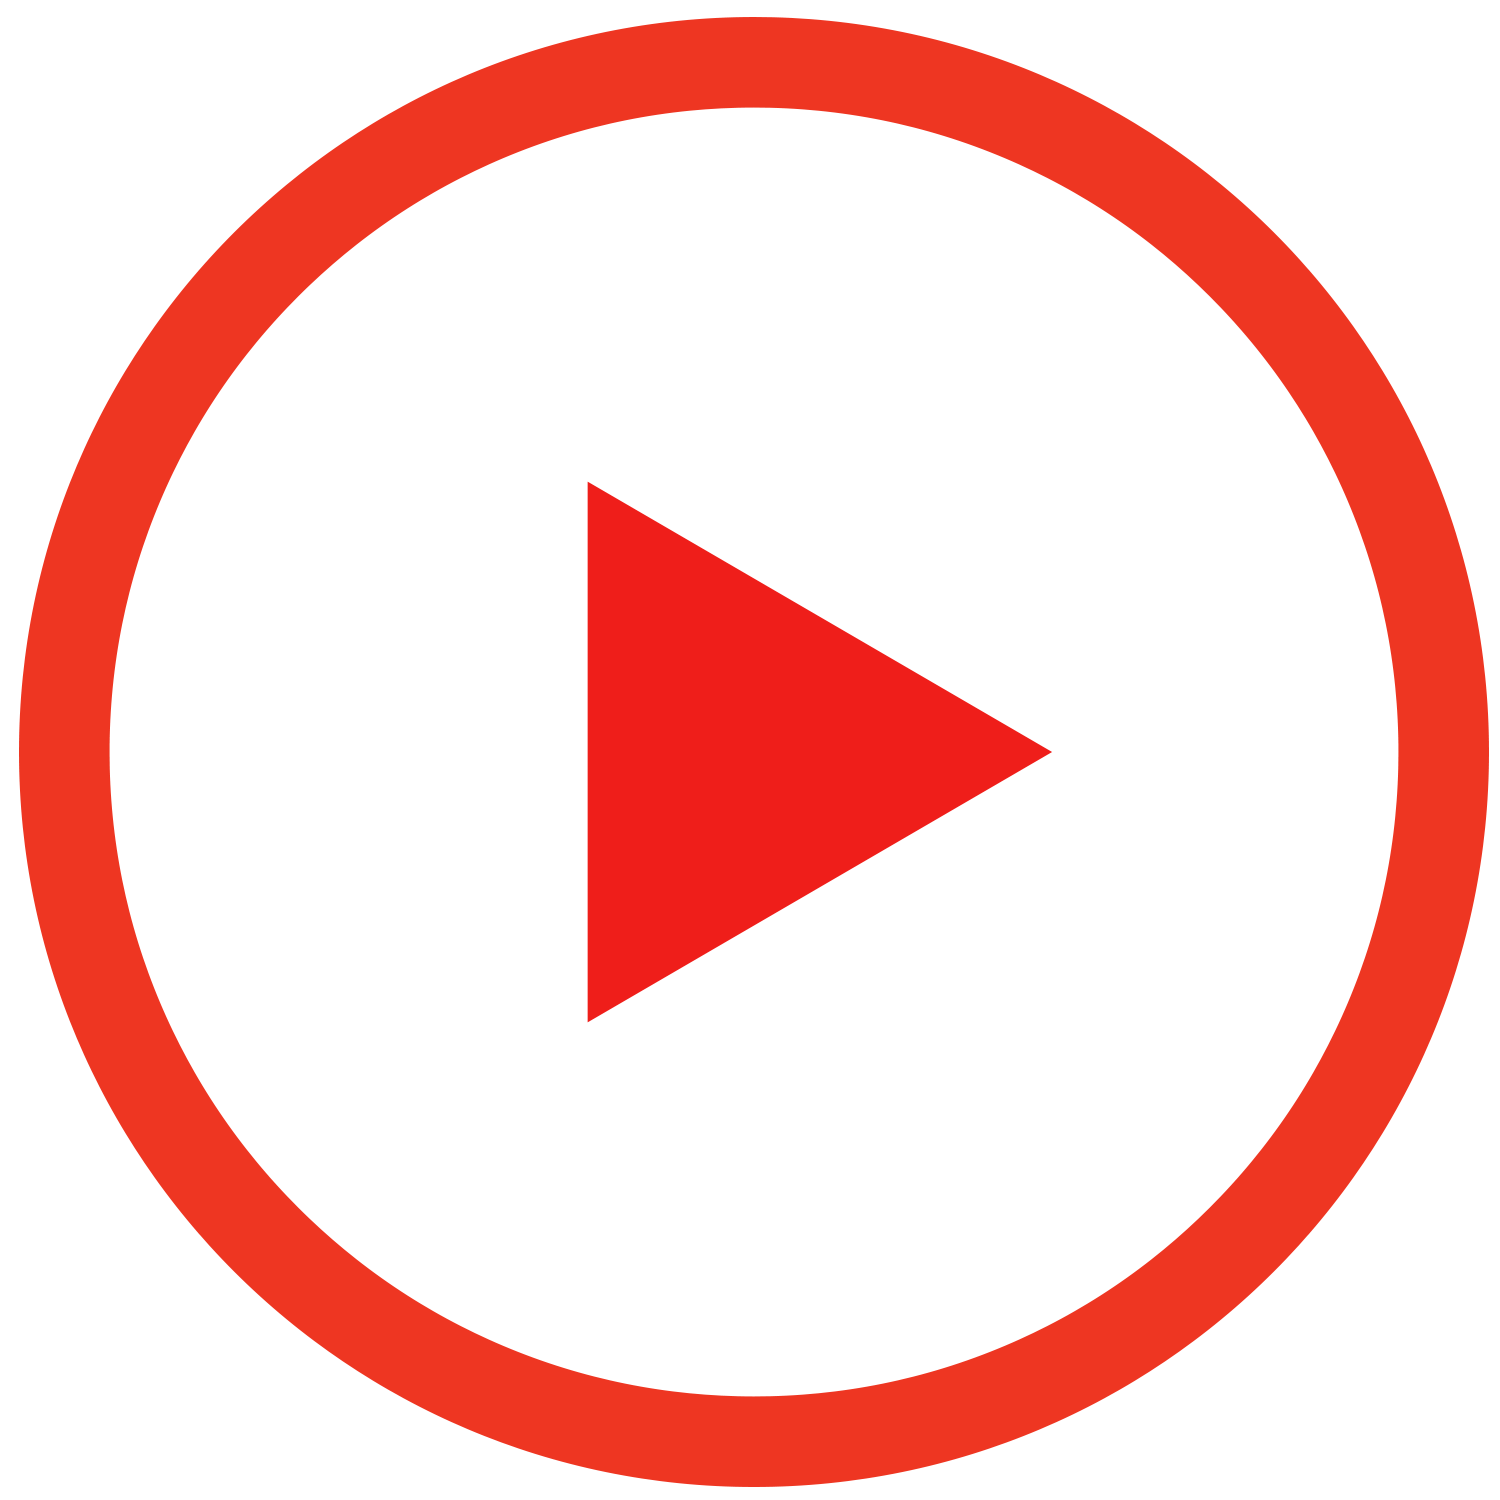 play button, play red outline button transparent png stickpng #28256